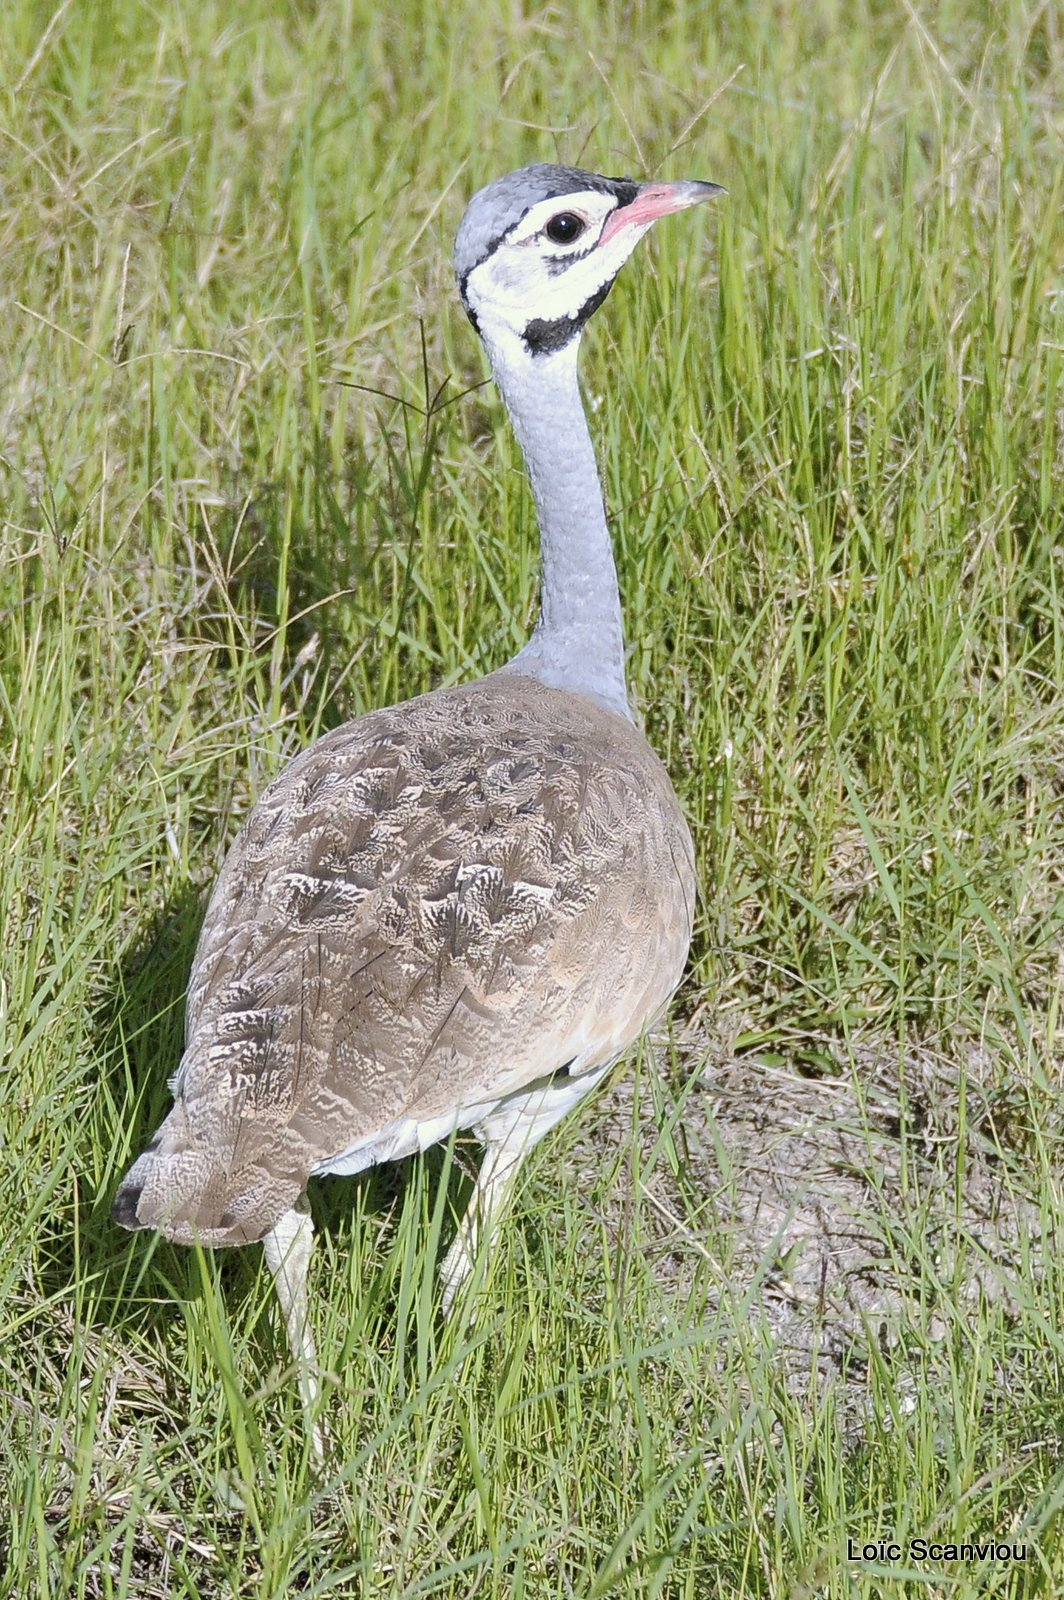 Outarde du Sénégal/White-bellied Bustard (1)